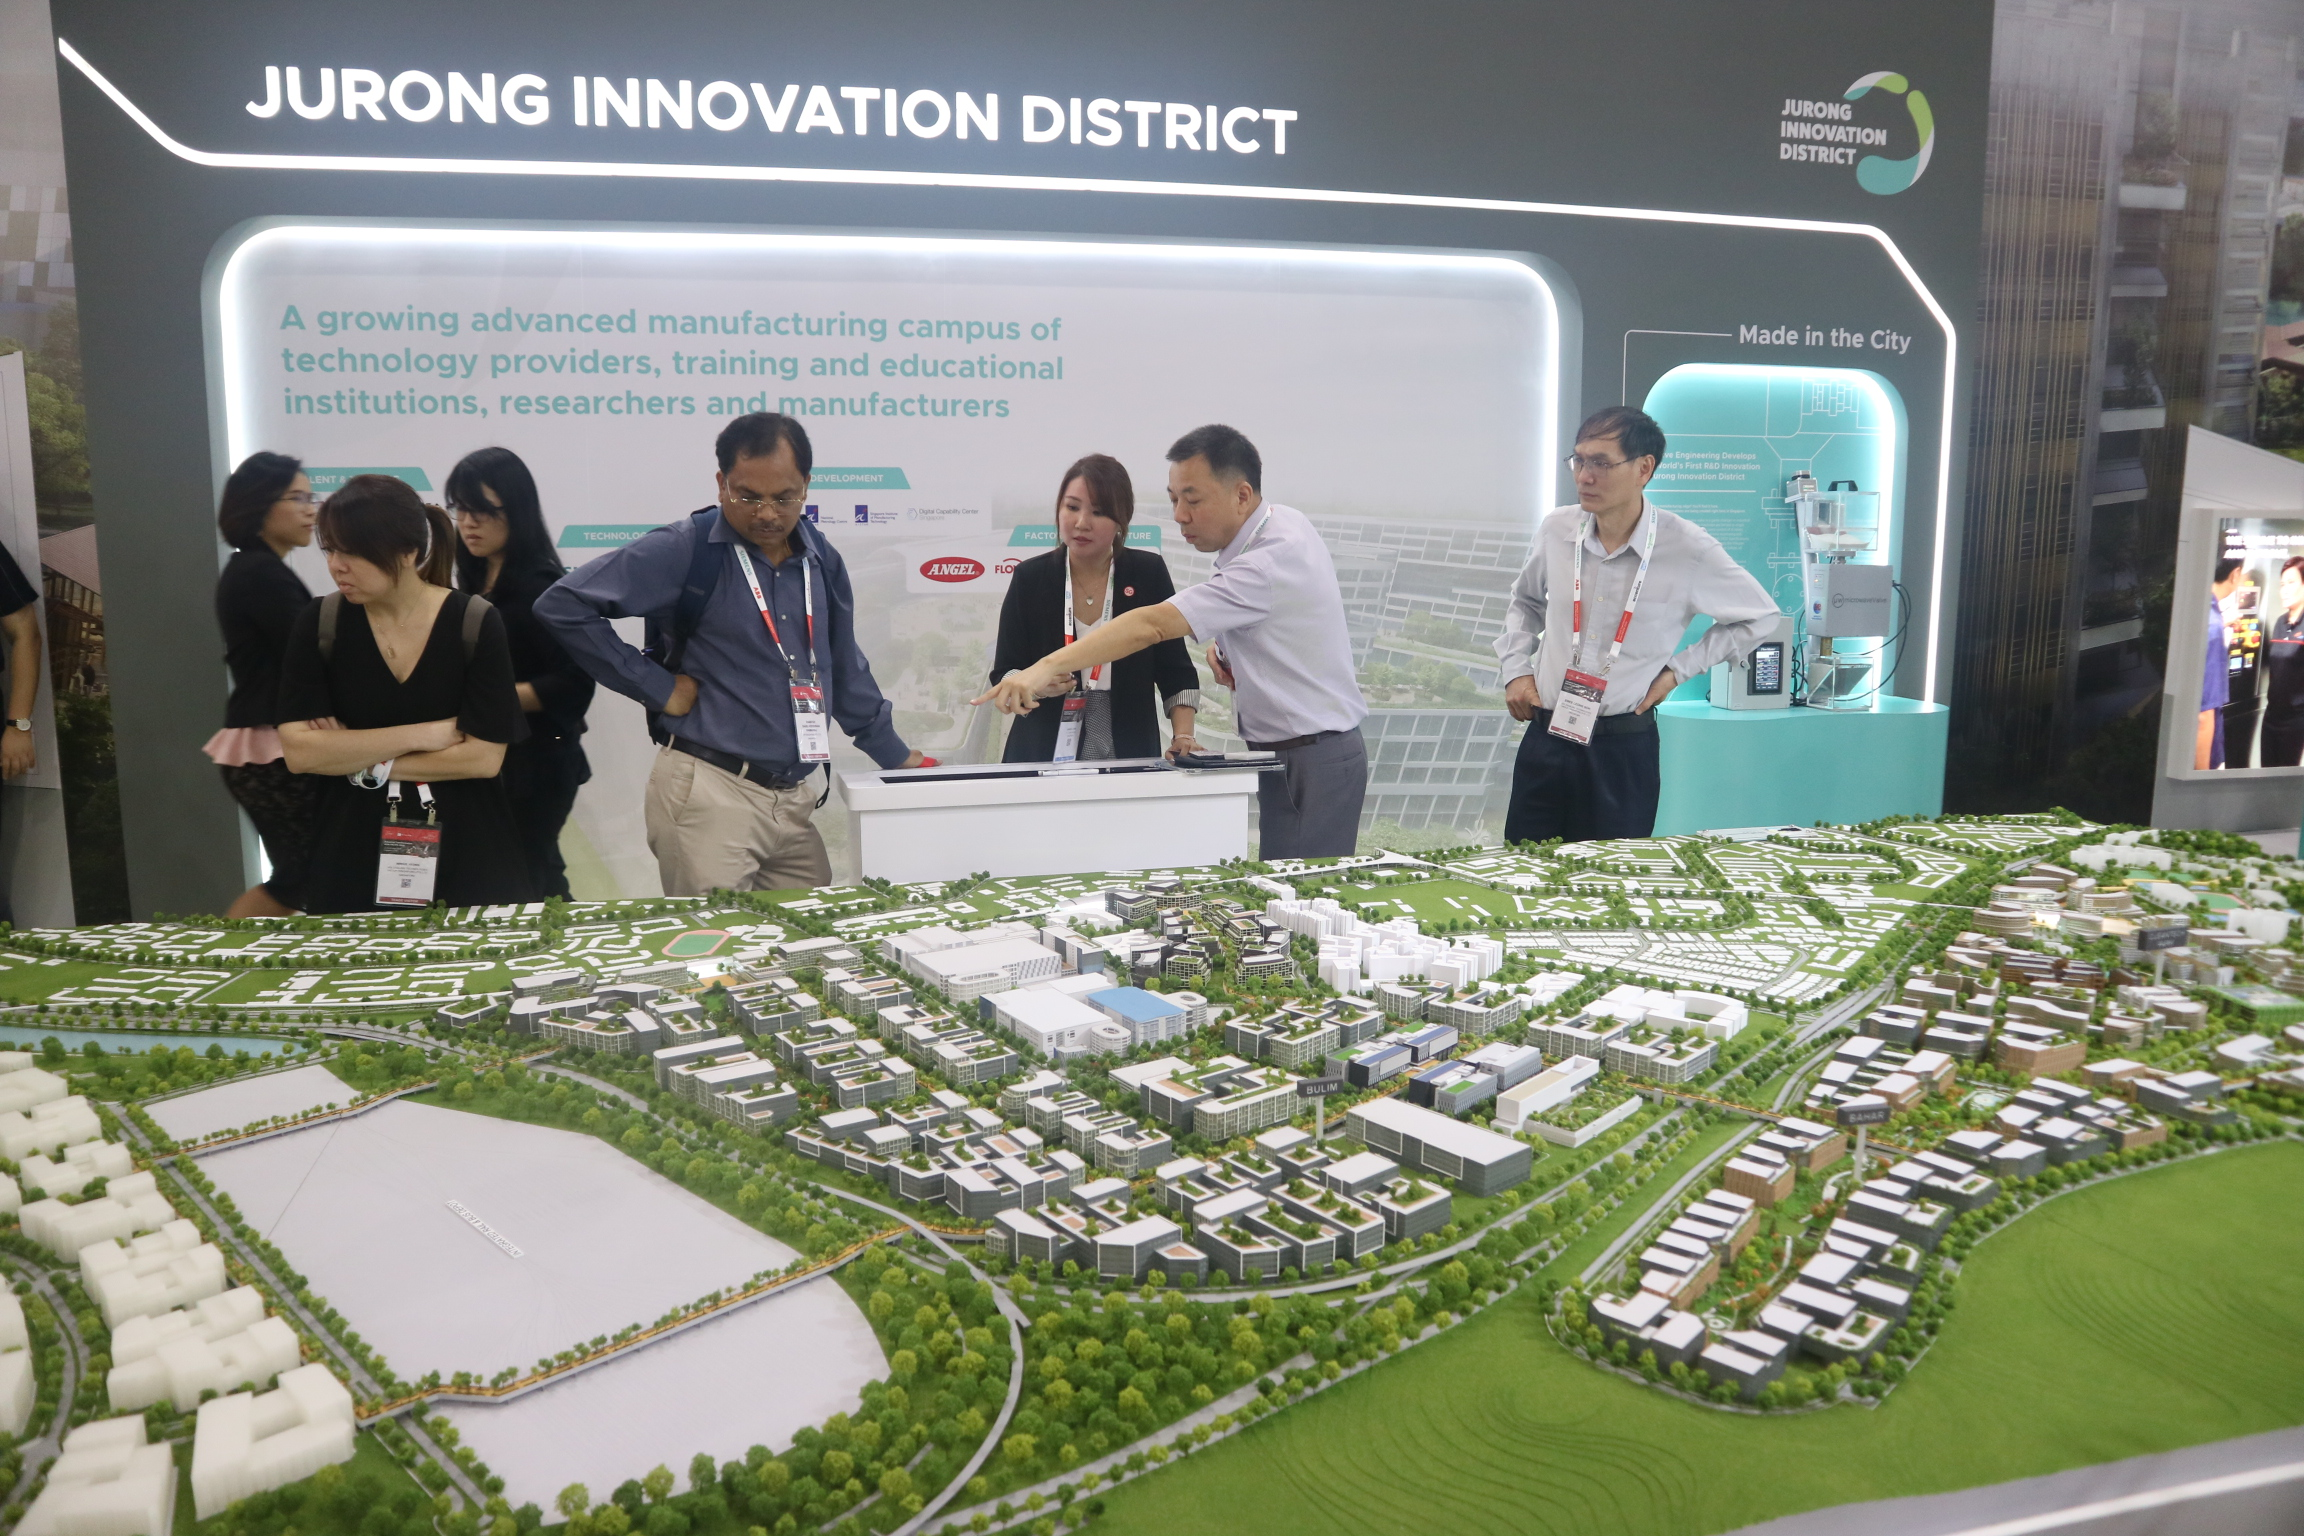 A model of Jurong Innovation District is on display at an exposition in Singapore, October 21, 2019. Photo: Viet Toan / Tuoi Tre News